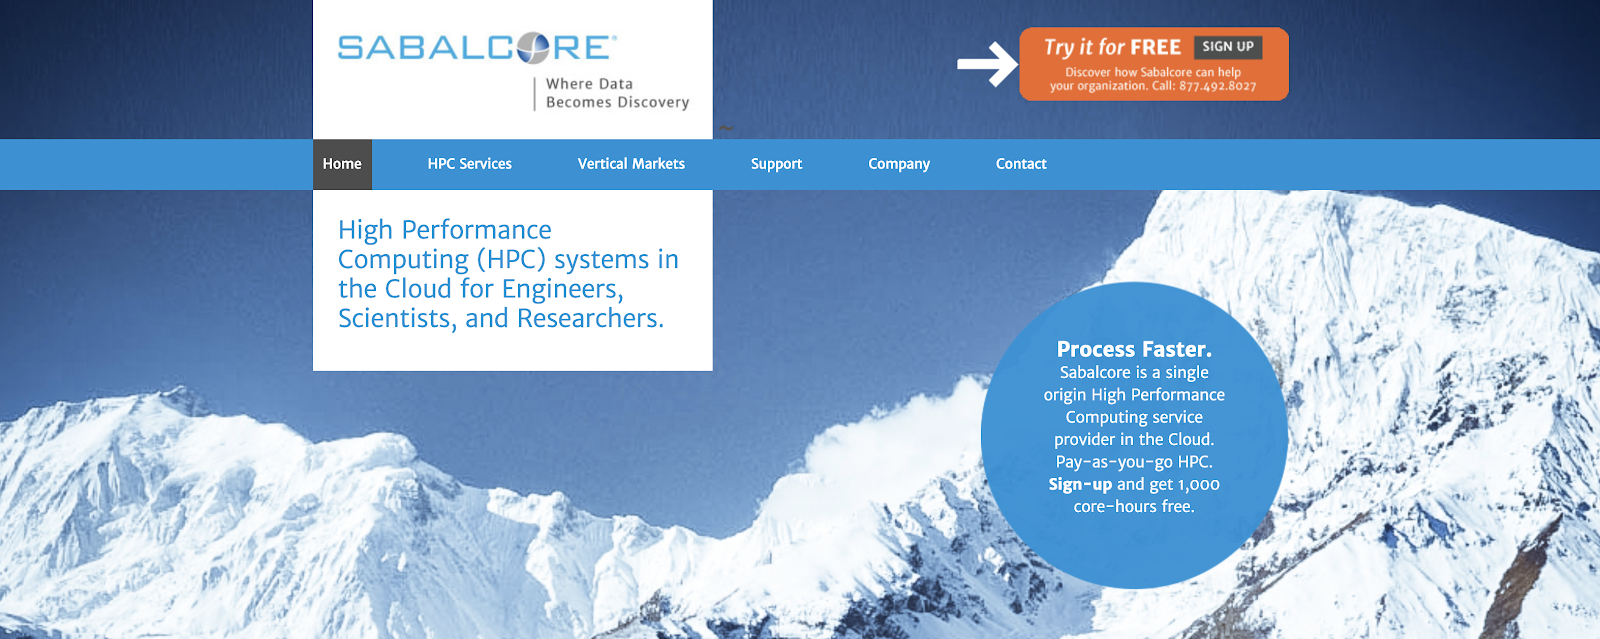 High Performance Computing System HPC Cloud Provider for Engineers, Scientists, and Researchers.